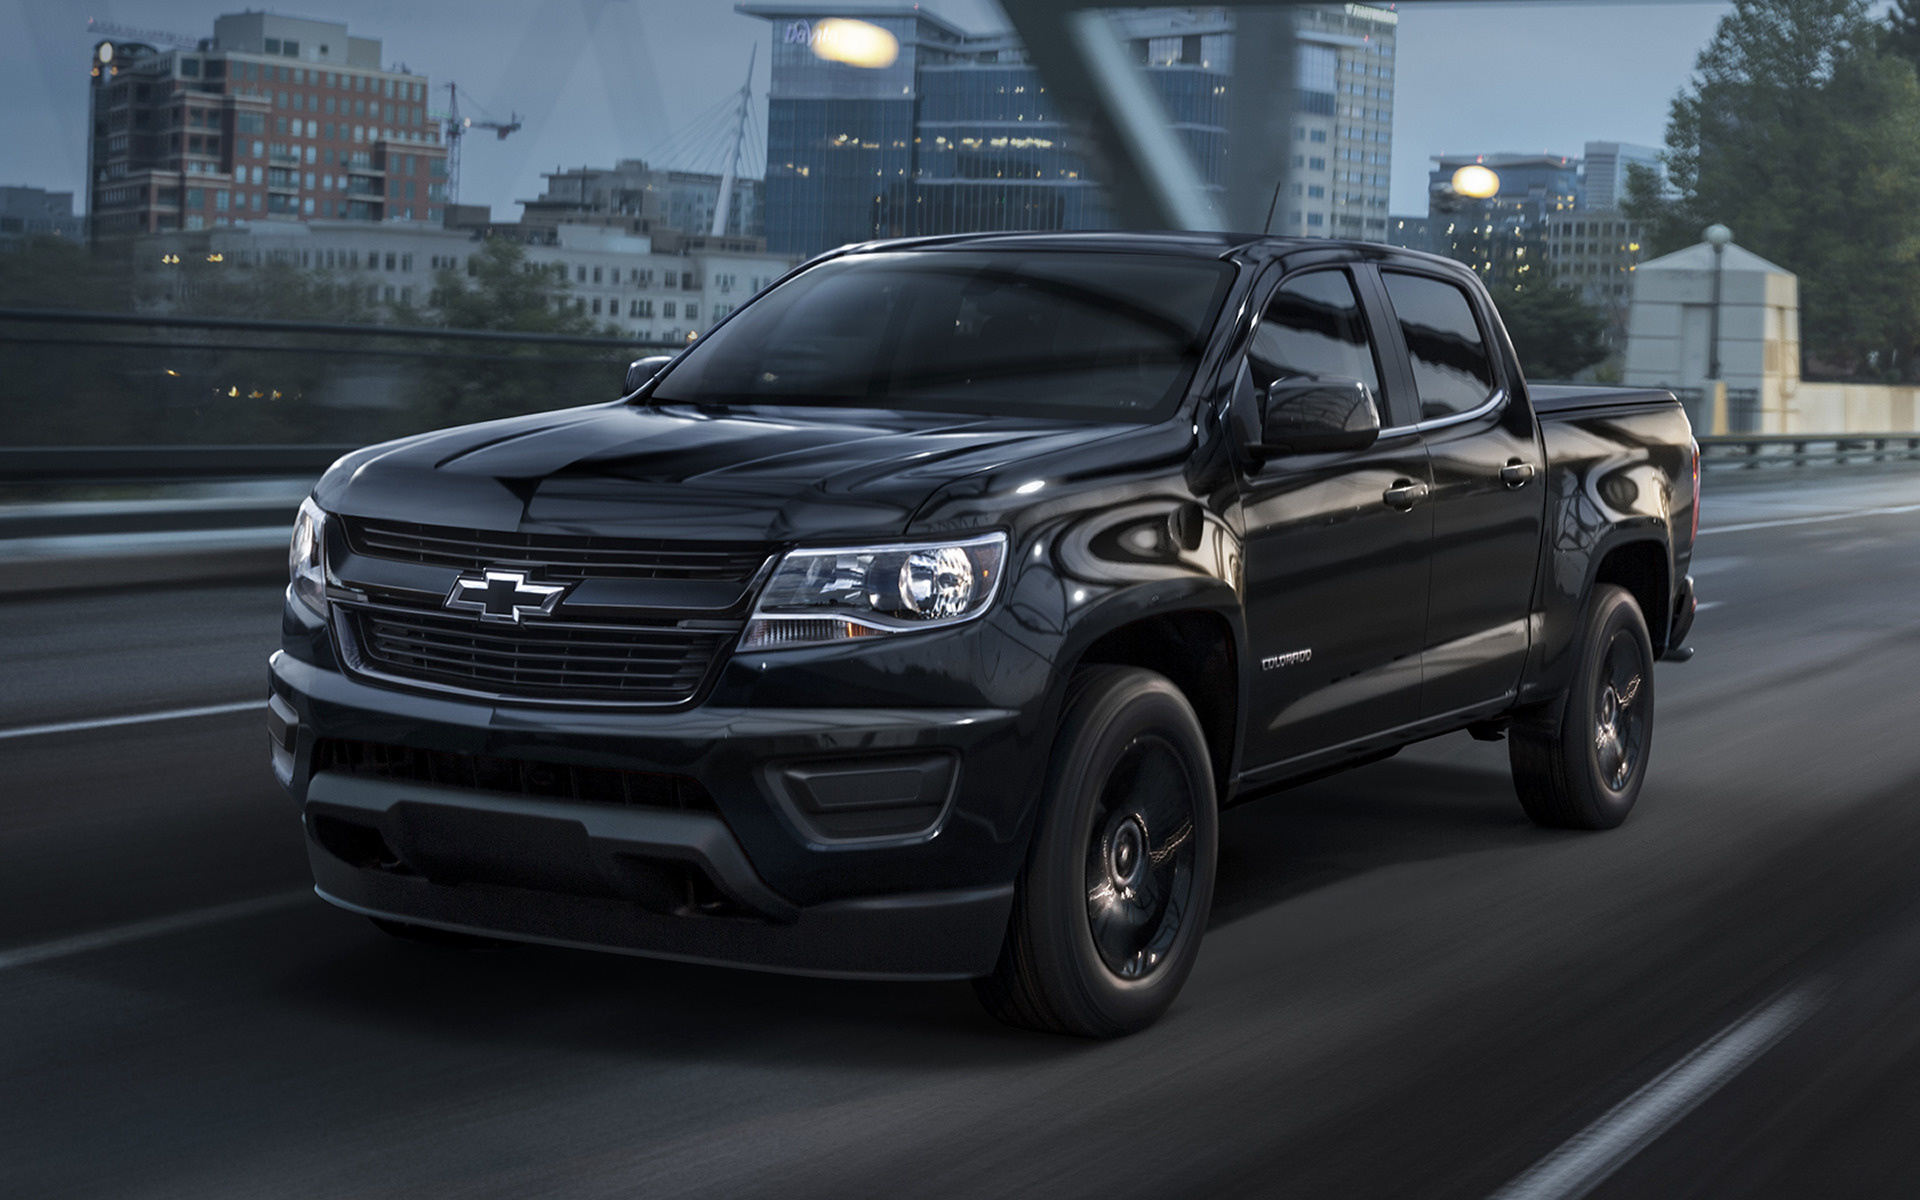 Dodge Muscle Car Wallpaper Chevrolet Colorado Lt Midnight Crew Cab 2016 Wallpapers